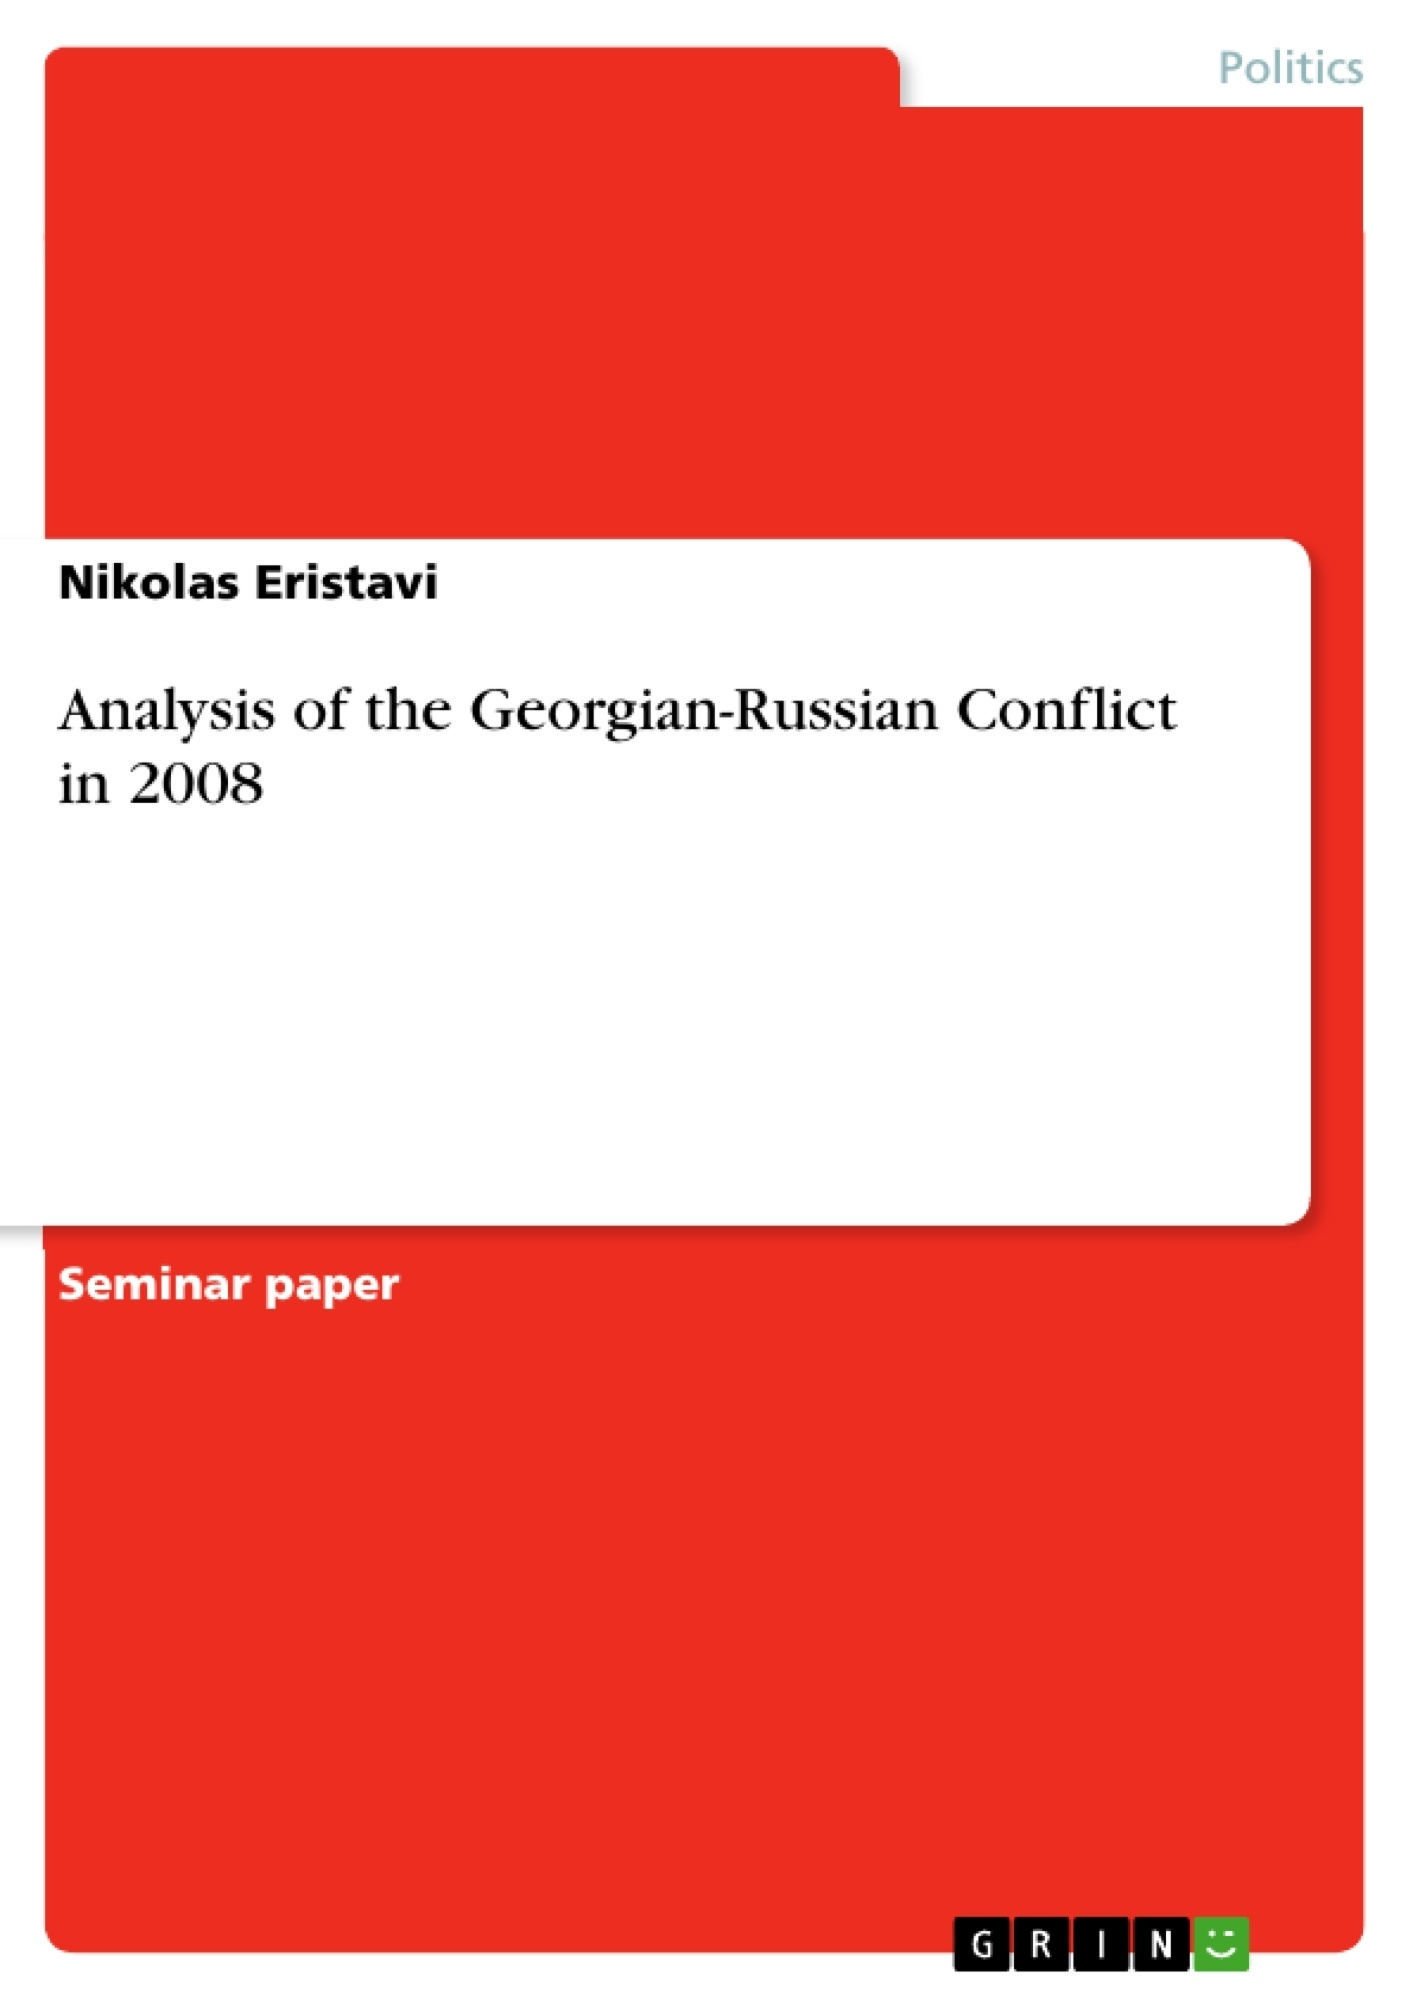 Title: Analysis of the Georgian-Russian Conflict in 2008